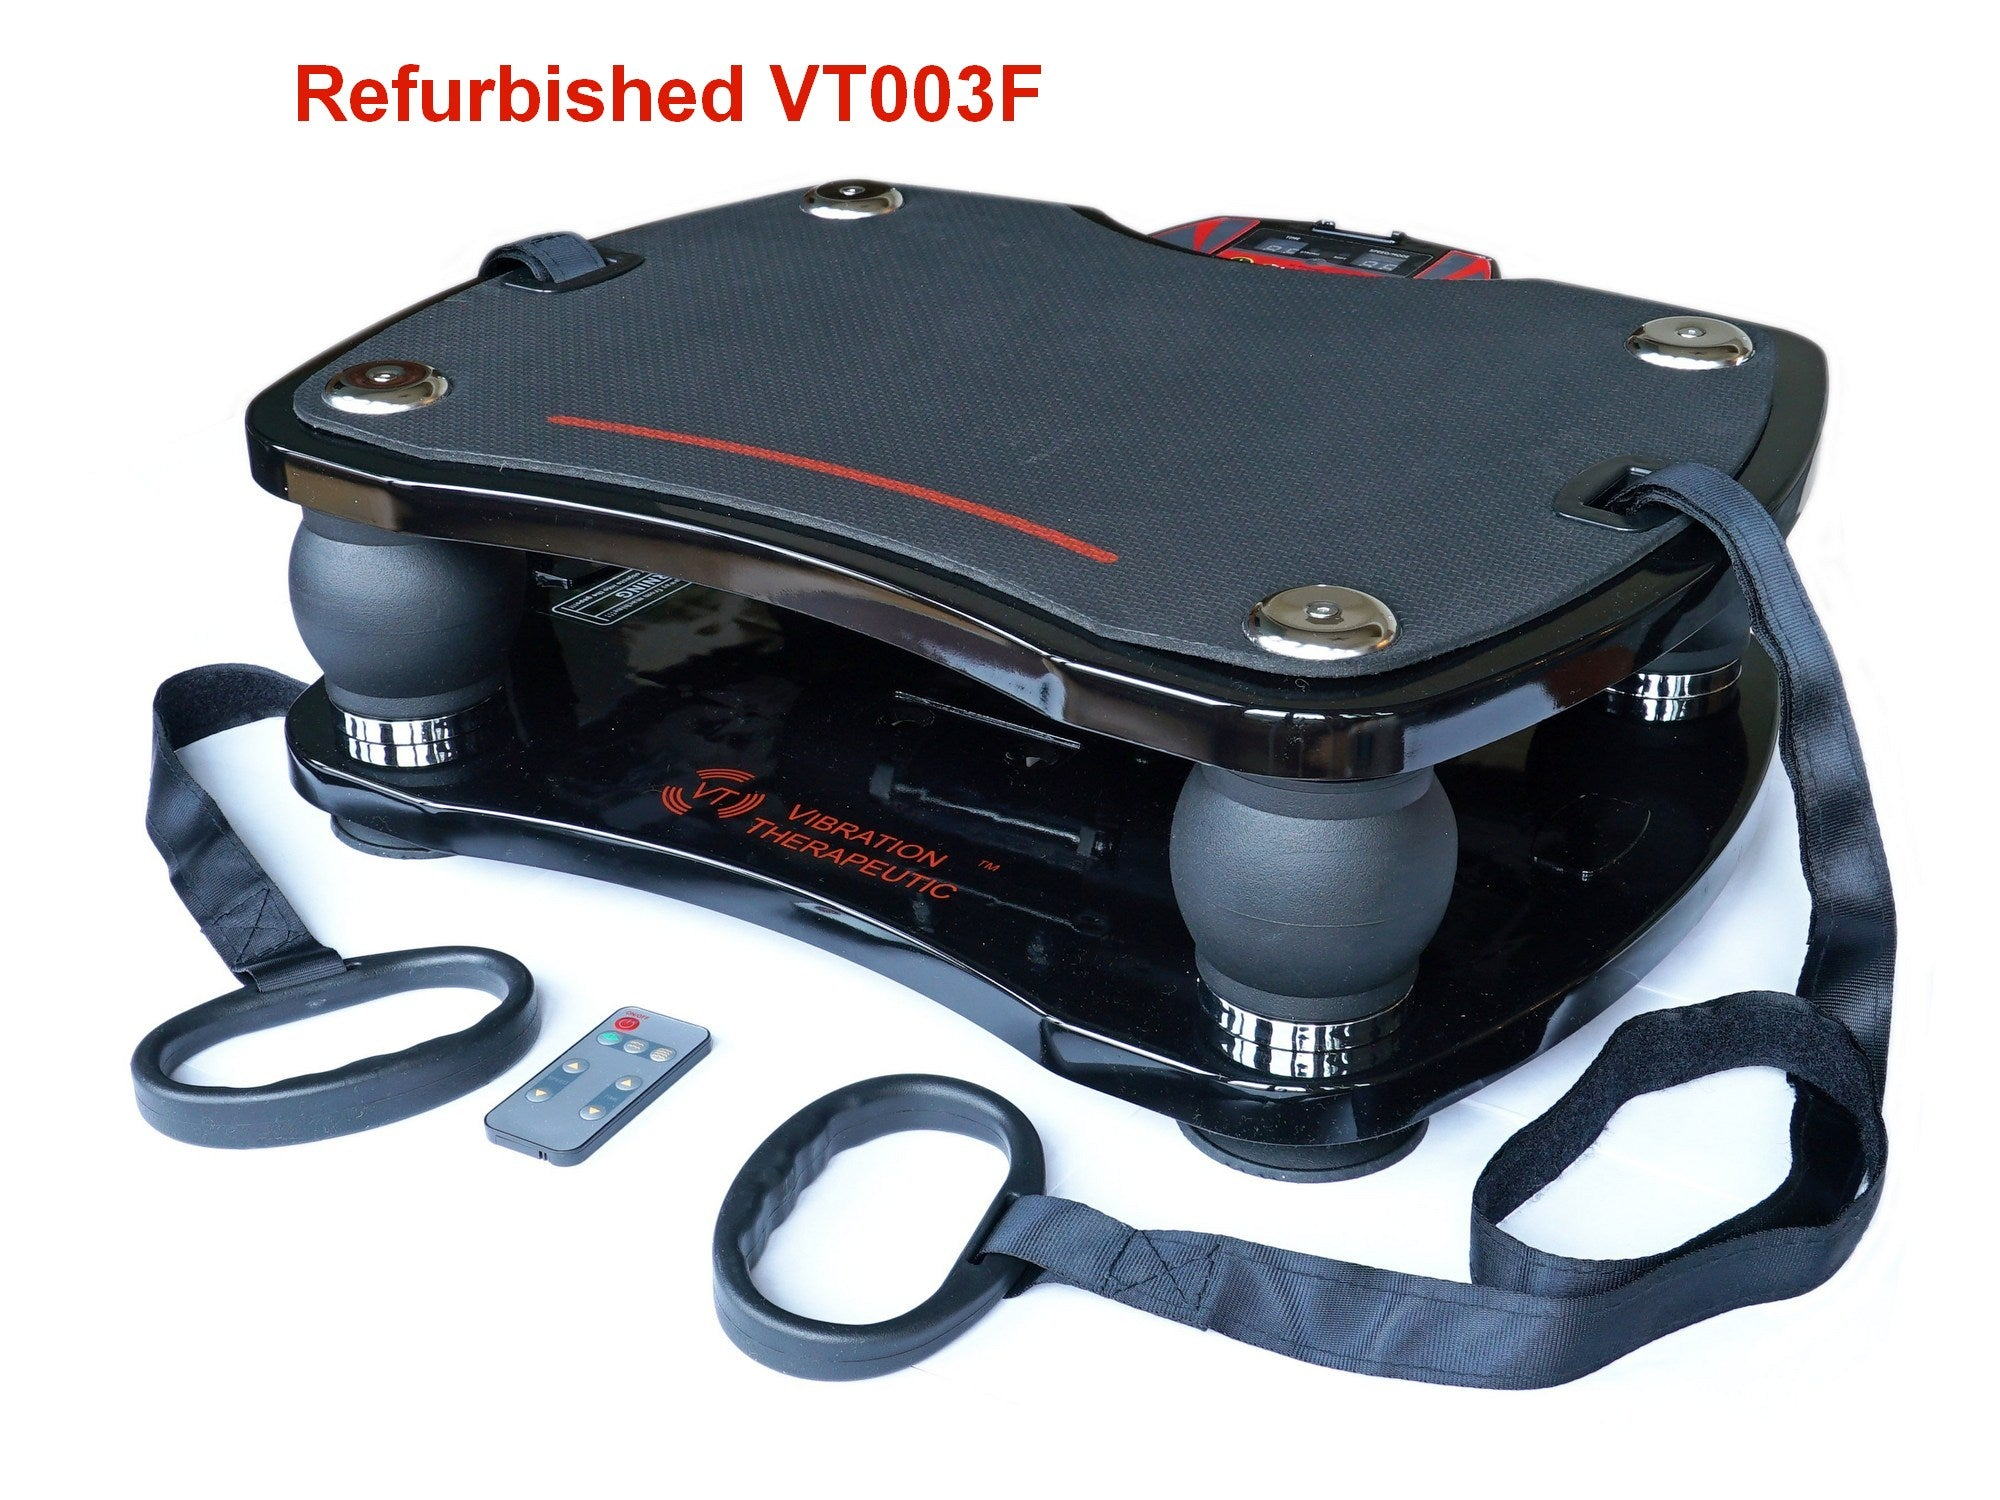 VT003F High Frequency Linear Vibration Plate, 15 - 40Hz Refurbished